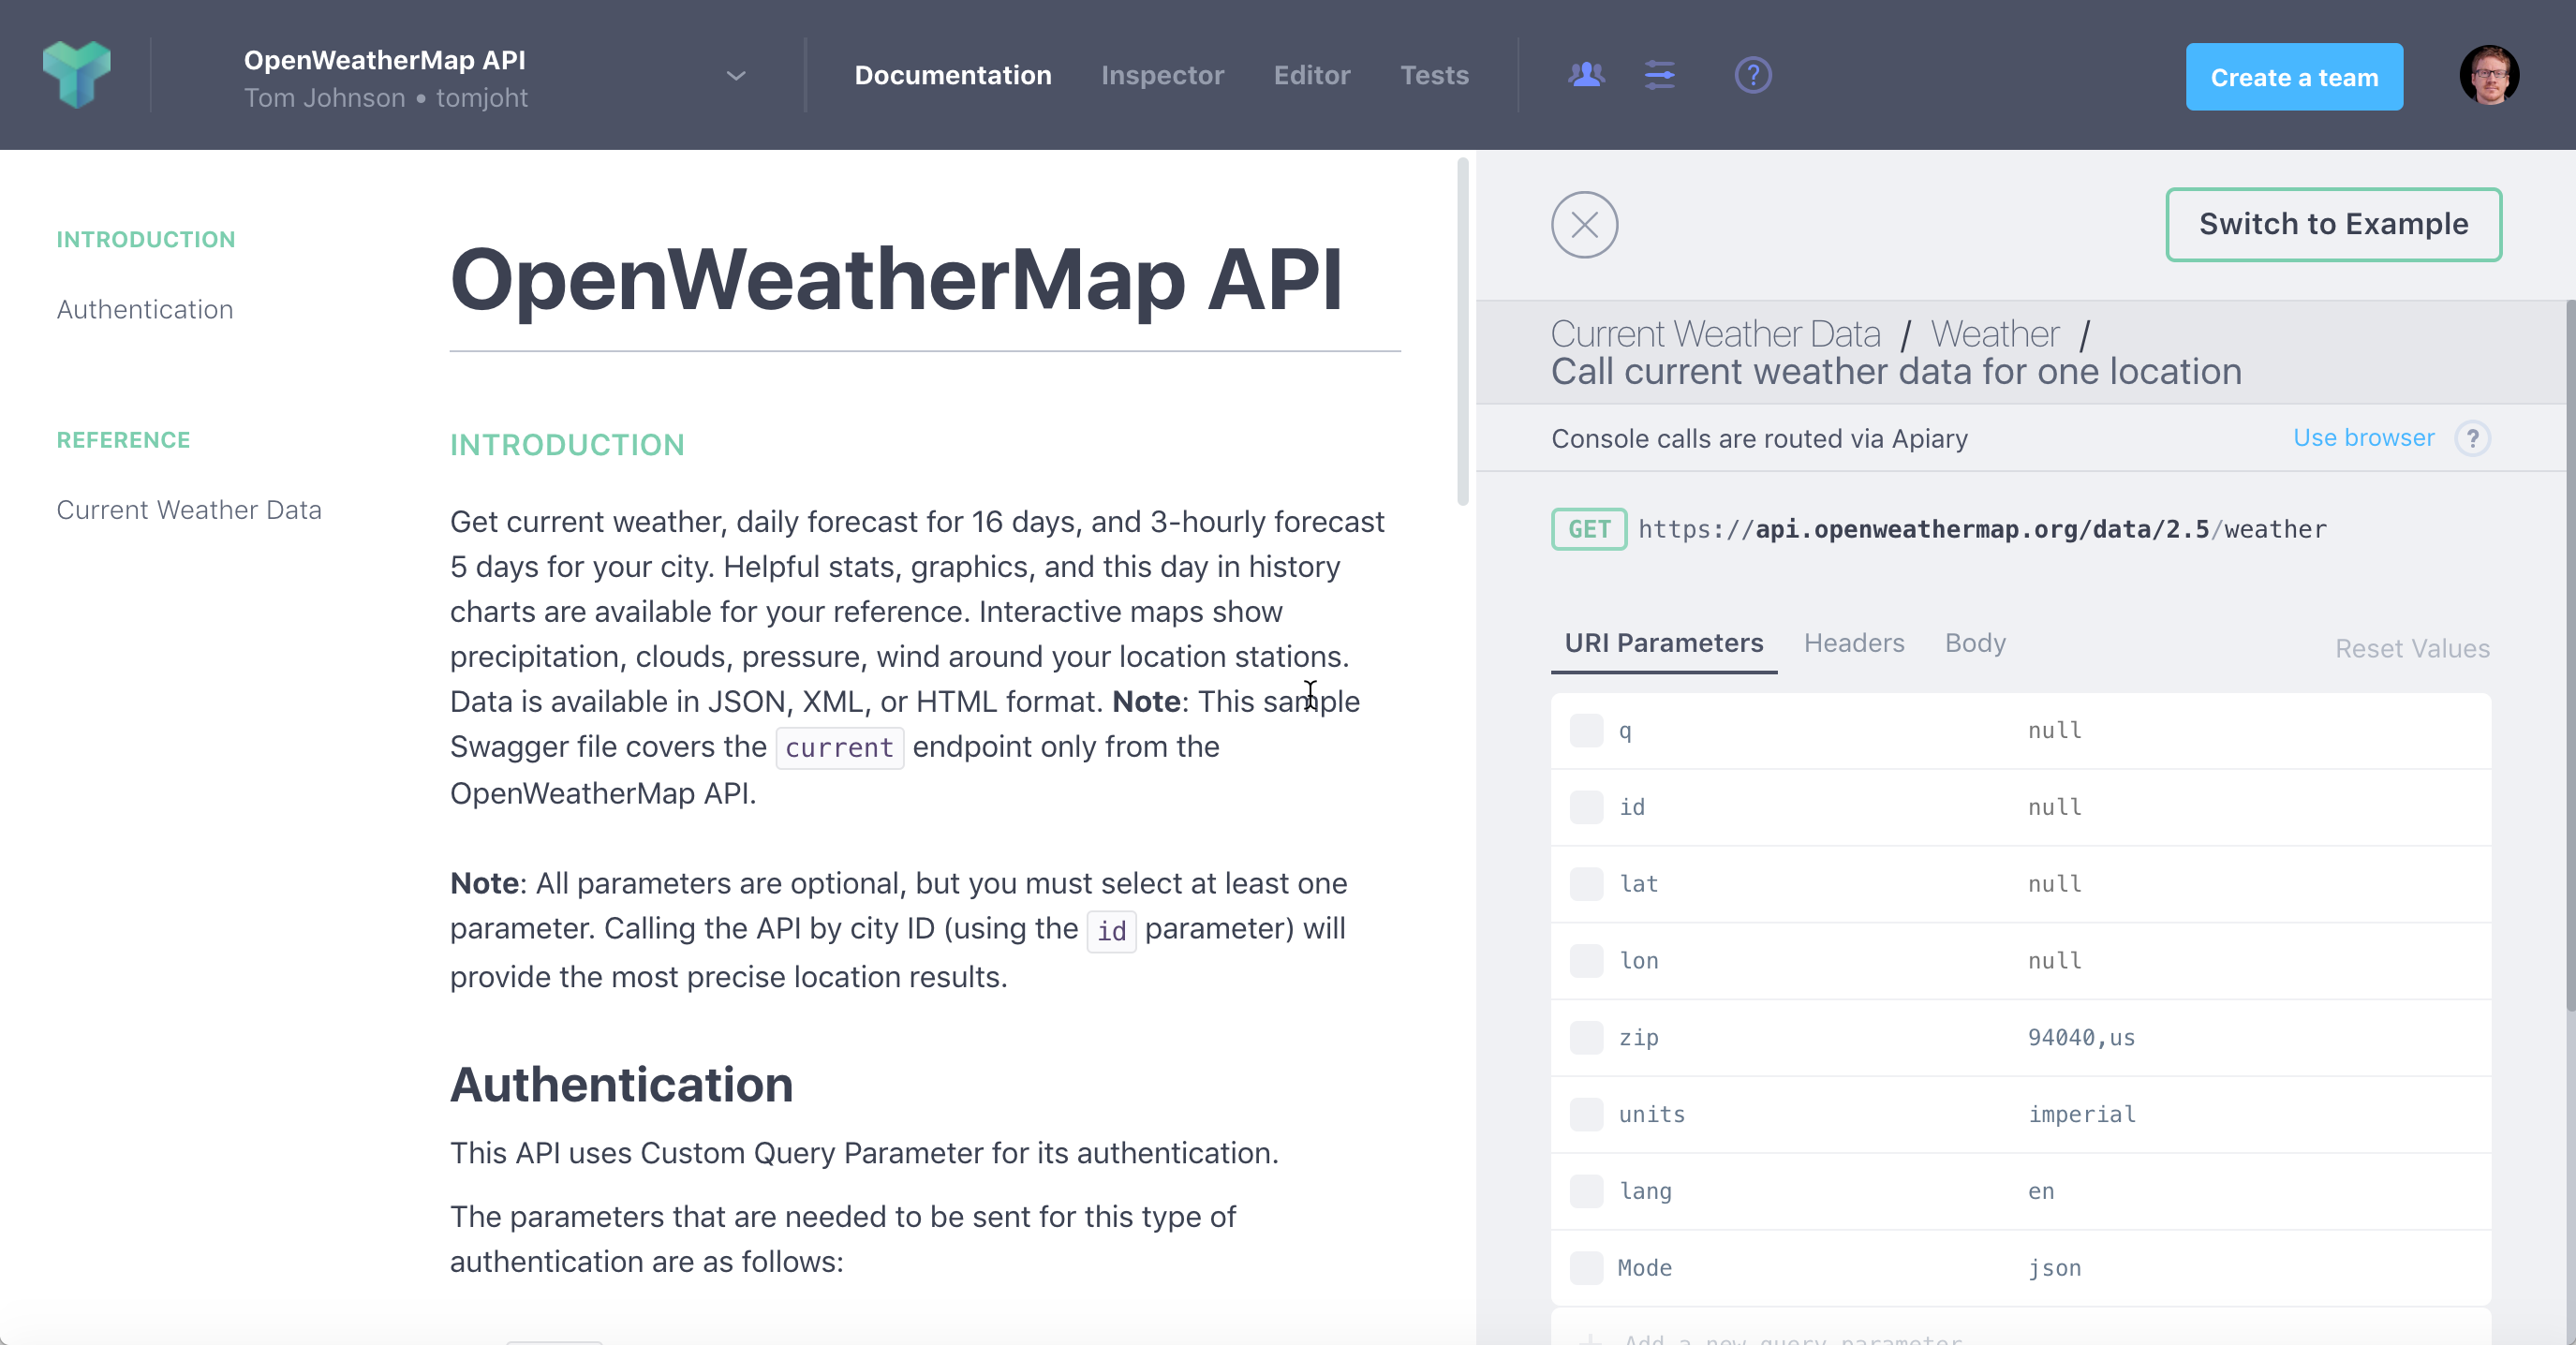 Previewing the documentation for the OpenWeatherMap API definition in Apiary